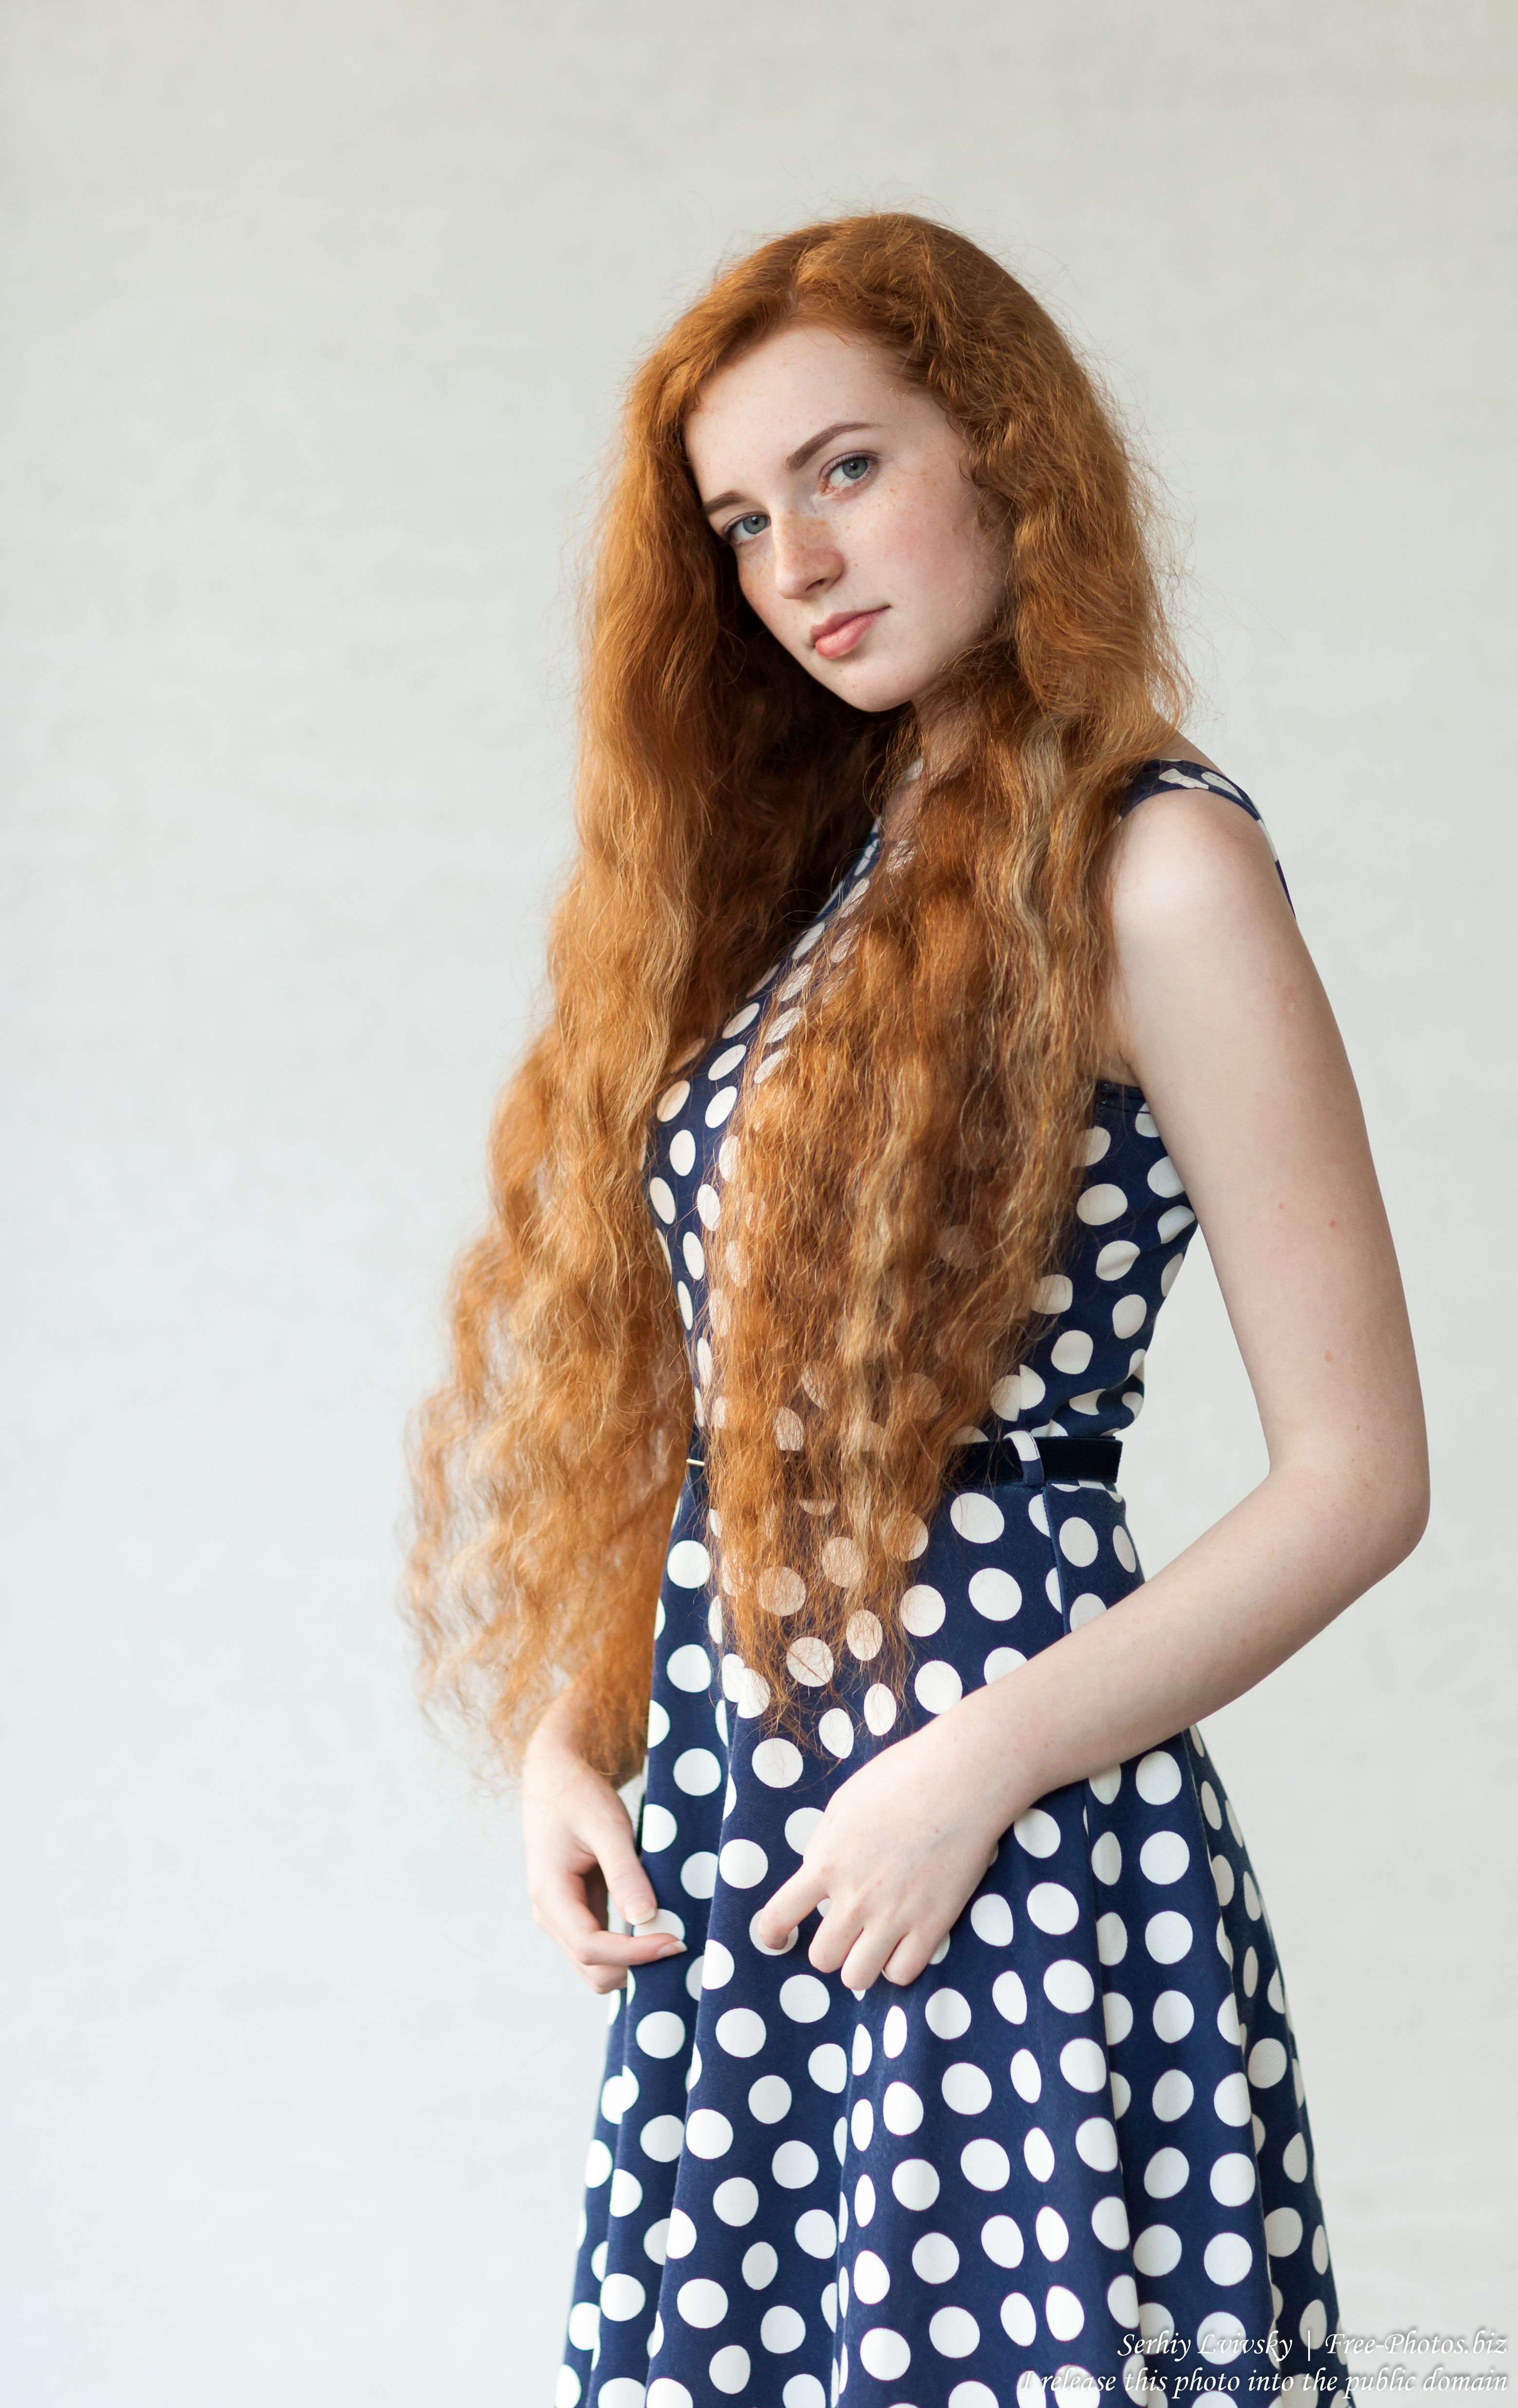 Ania - a 19-year-old natural red-haired girl photographed in June 2017 by Serhiy Lvivsky, picture 8